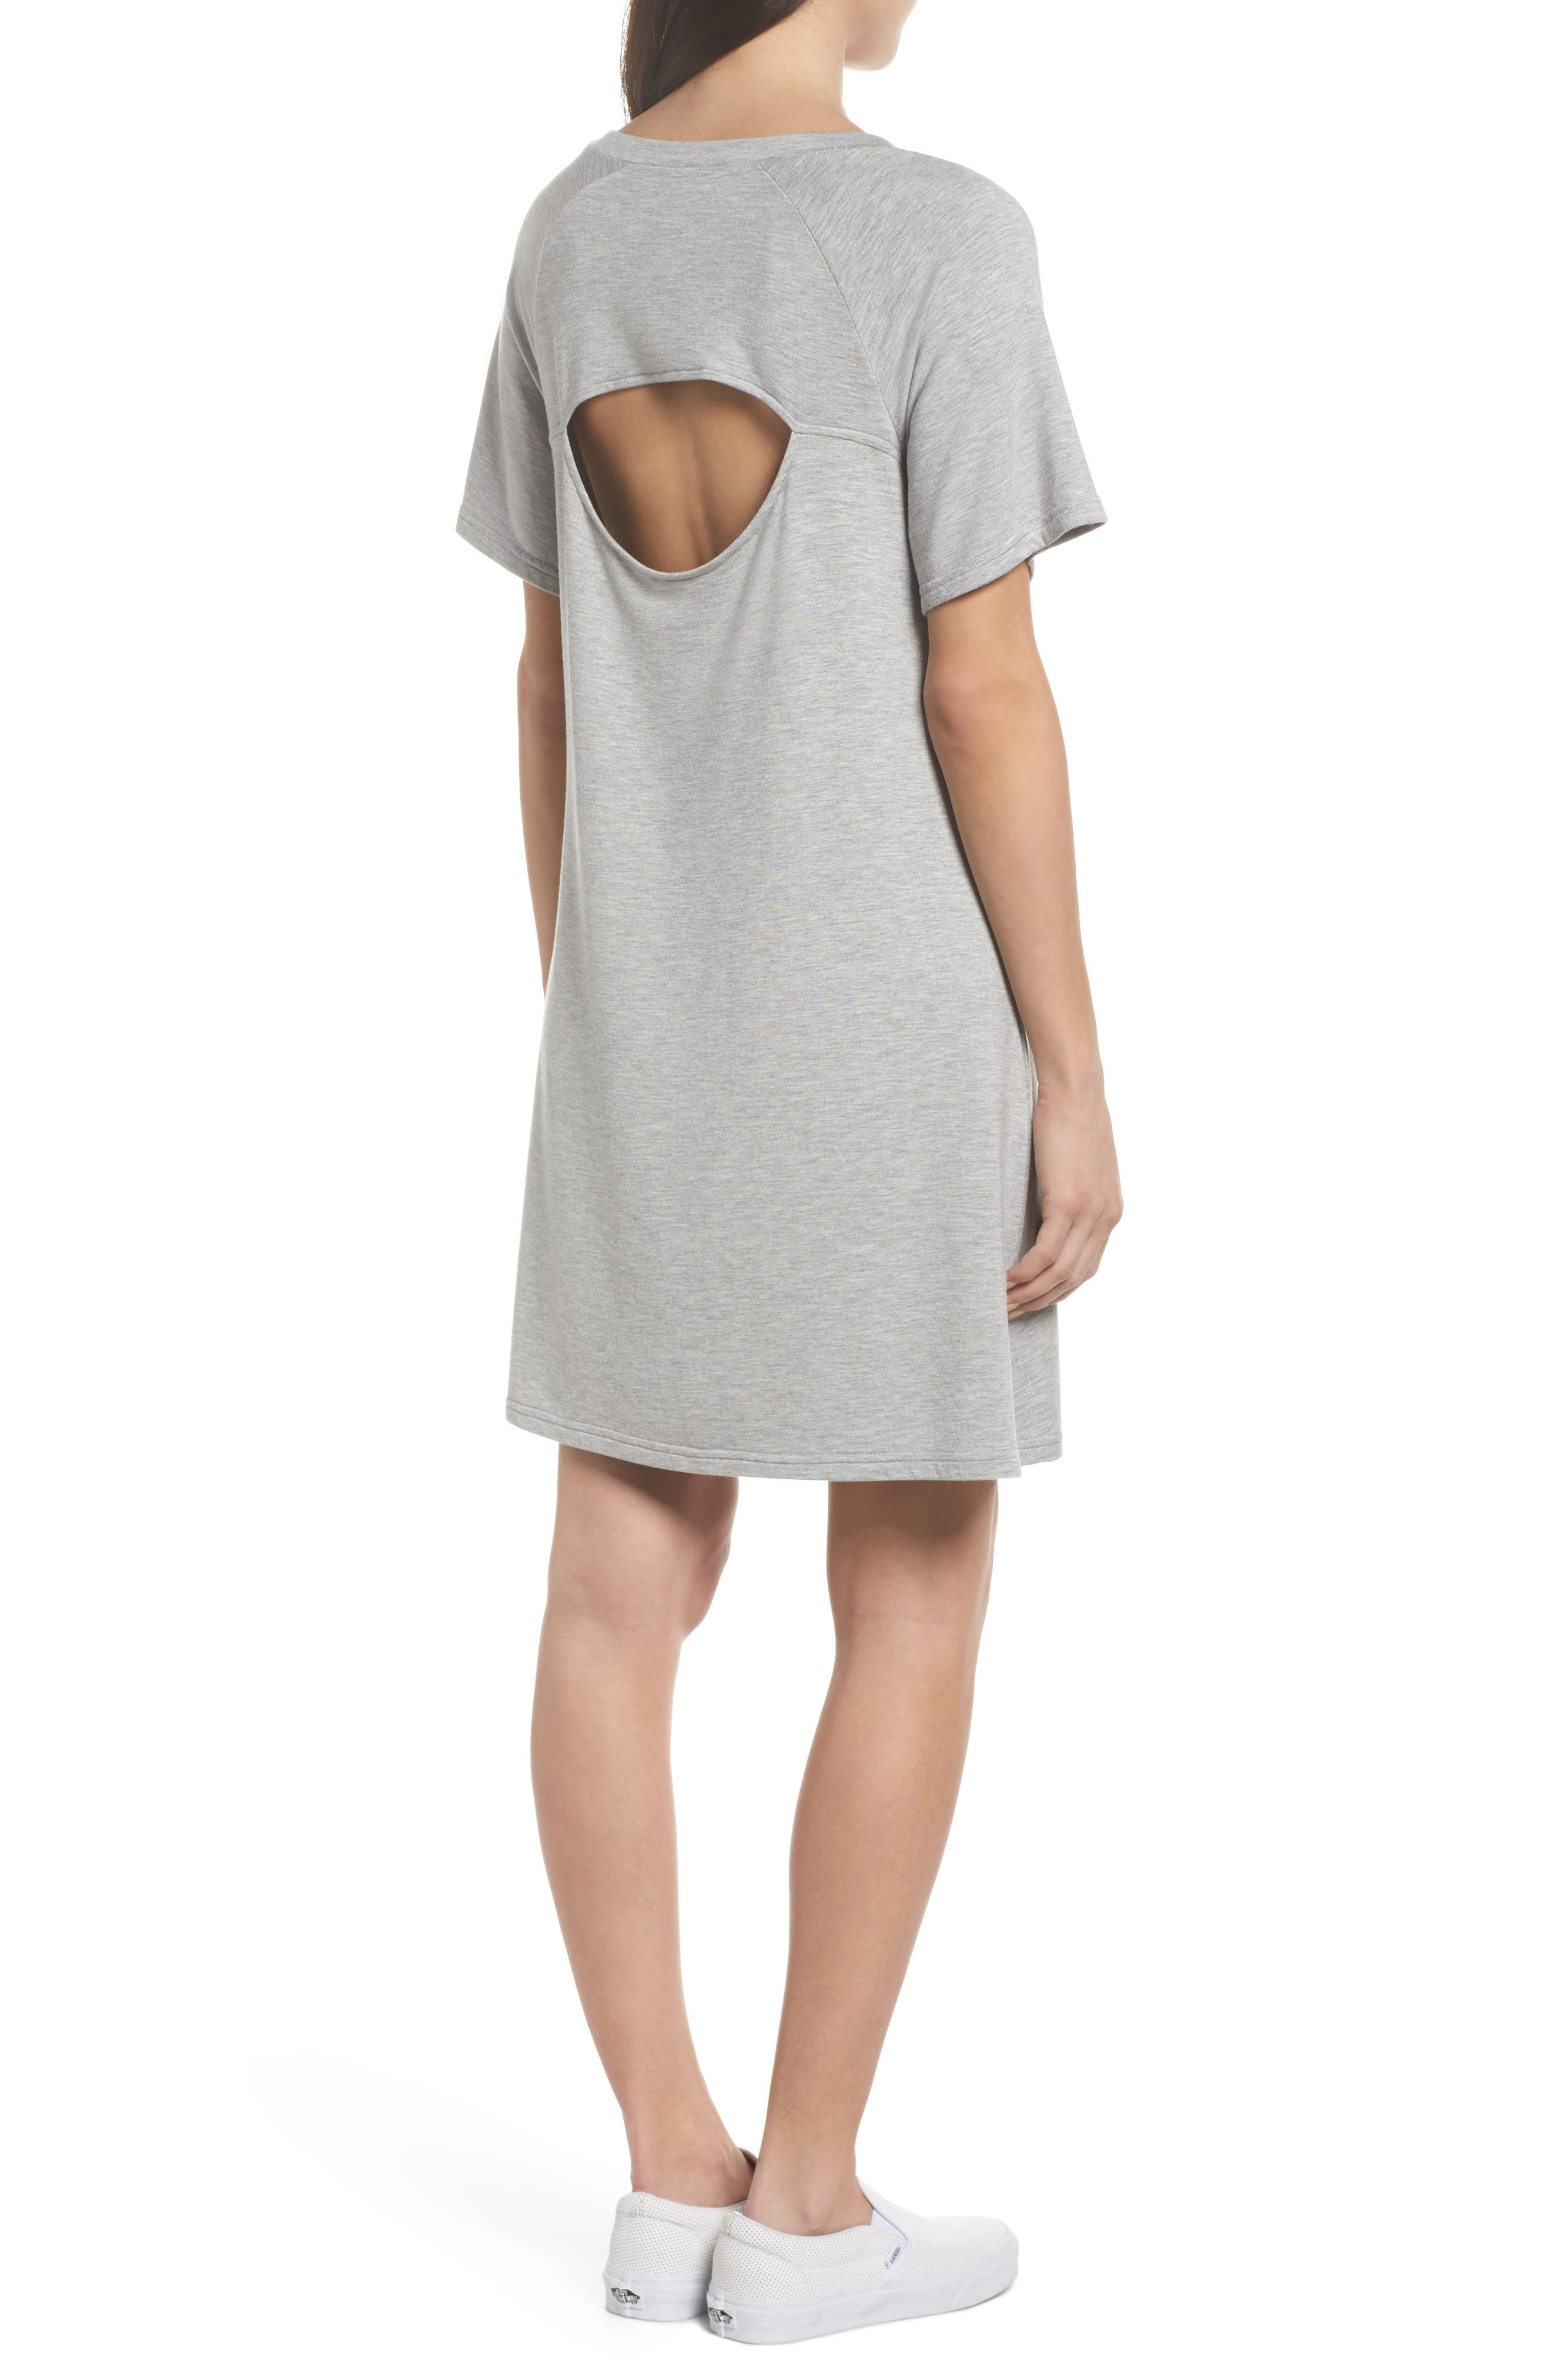 Greer Knit Shift Dress,                             Alternate thumbnail 2, color,                             Light Heather Grey